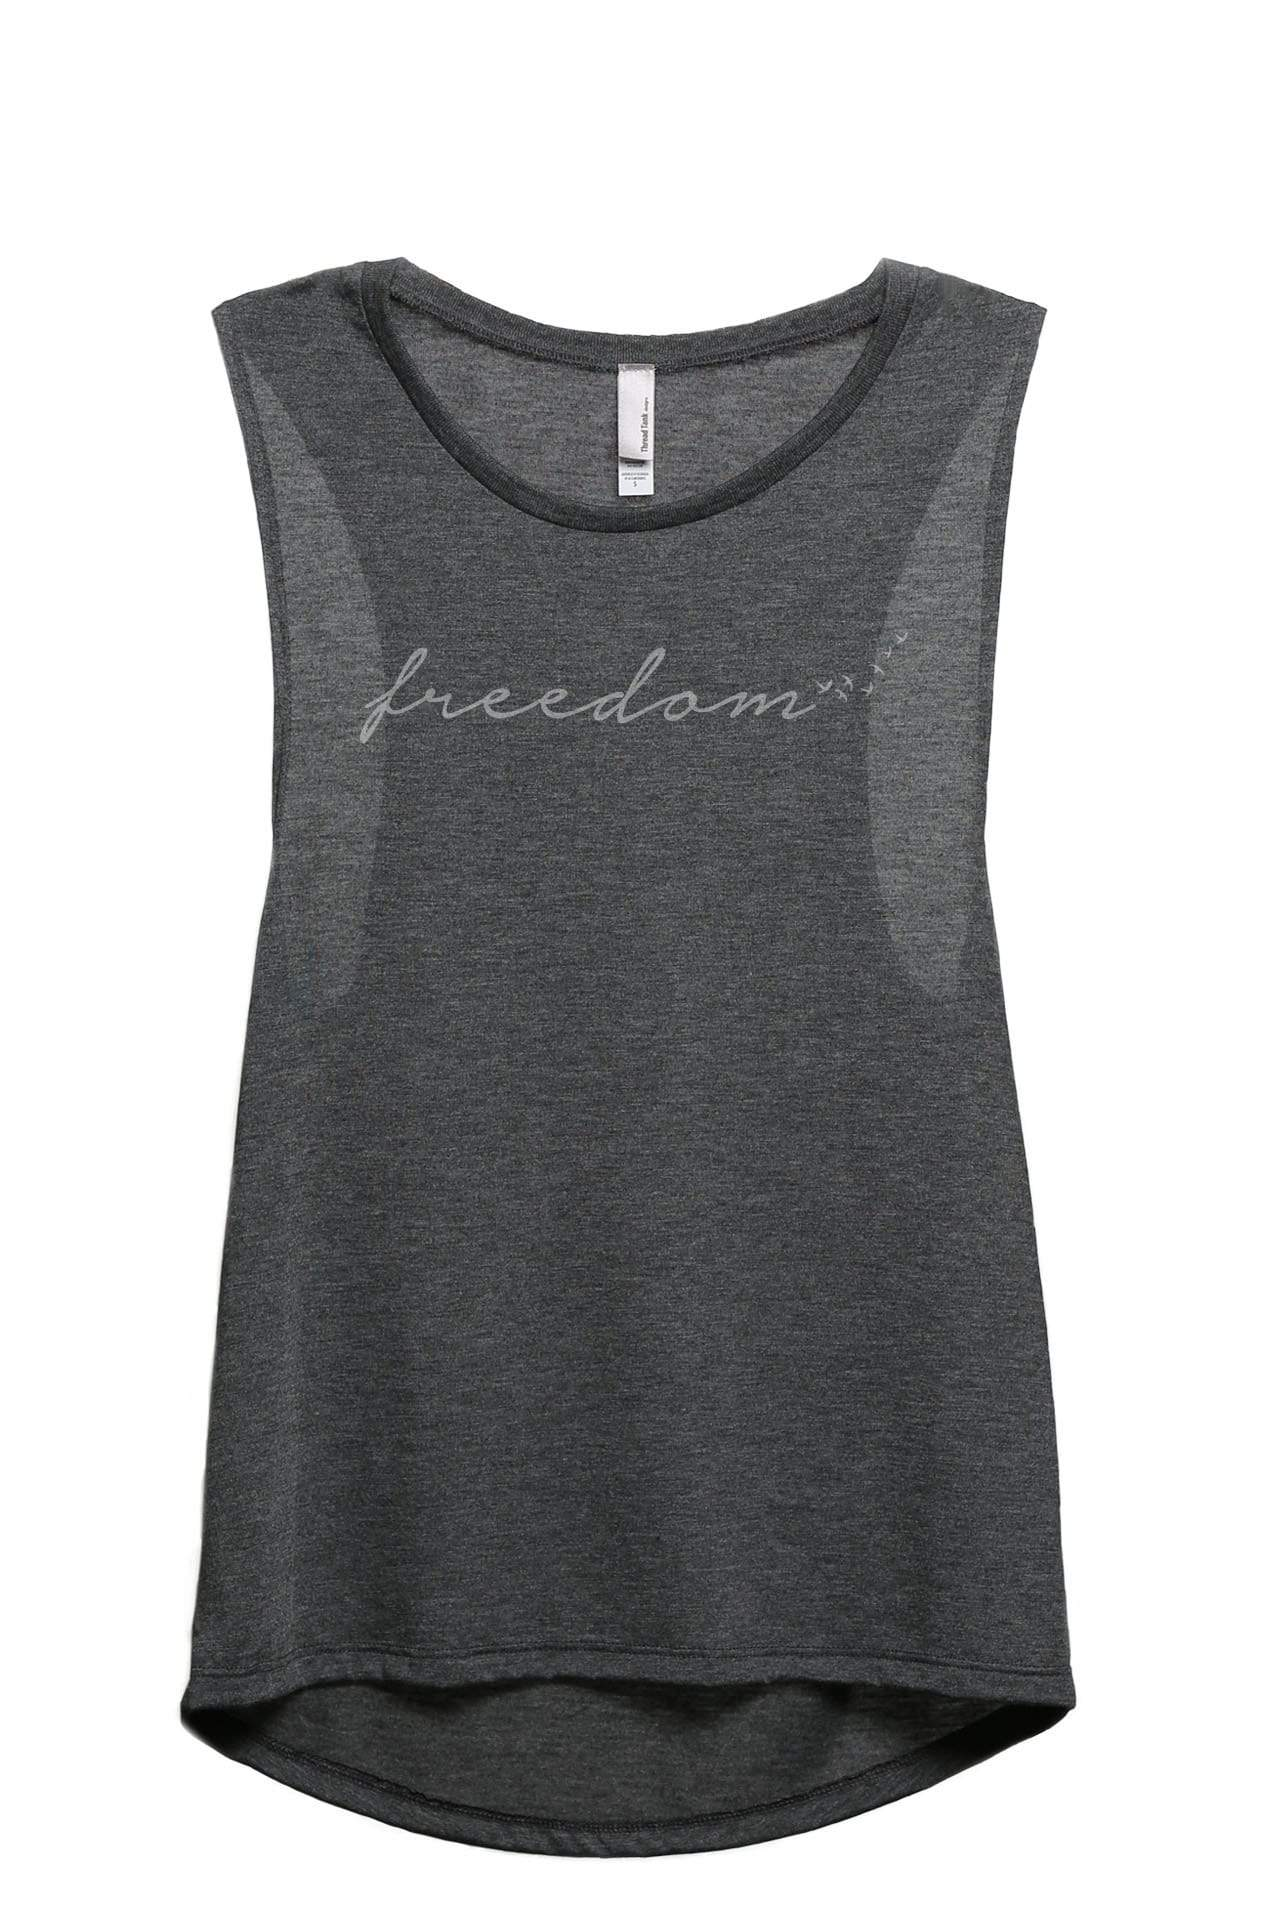 Freedome Script And Sunshine Women's Relaxed Muscle Tank Tee Charcoal